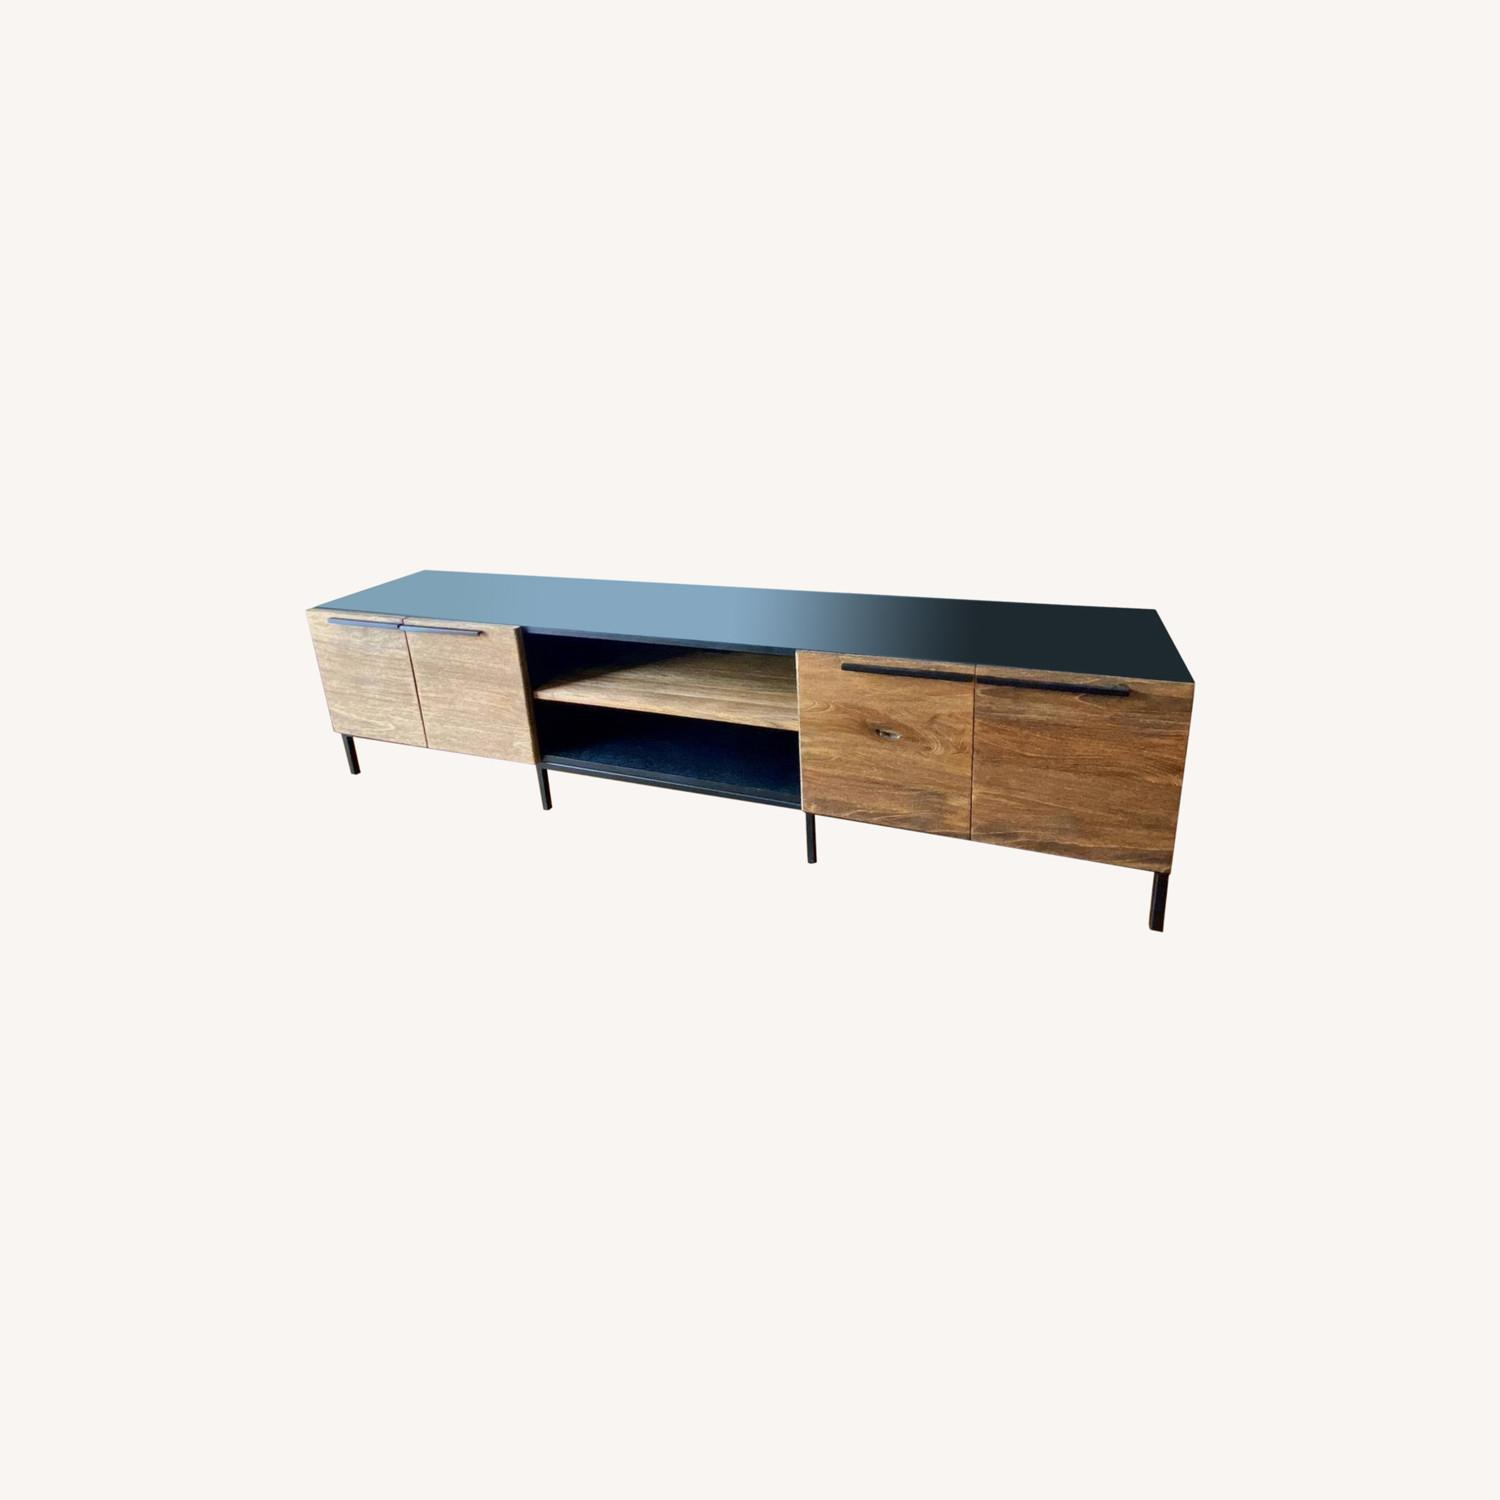 Crate & Barrel Rigby Media Console - image-0